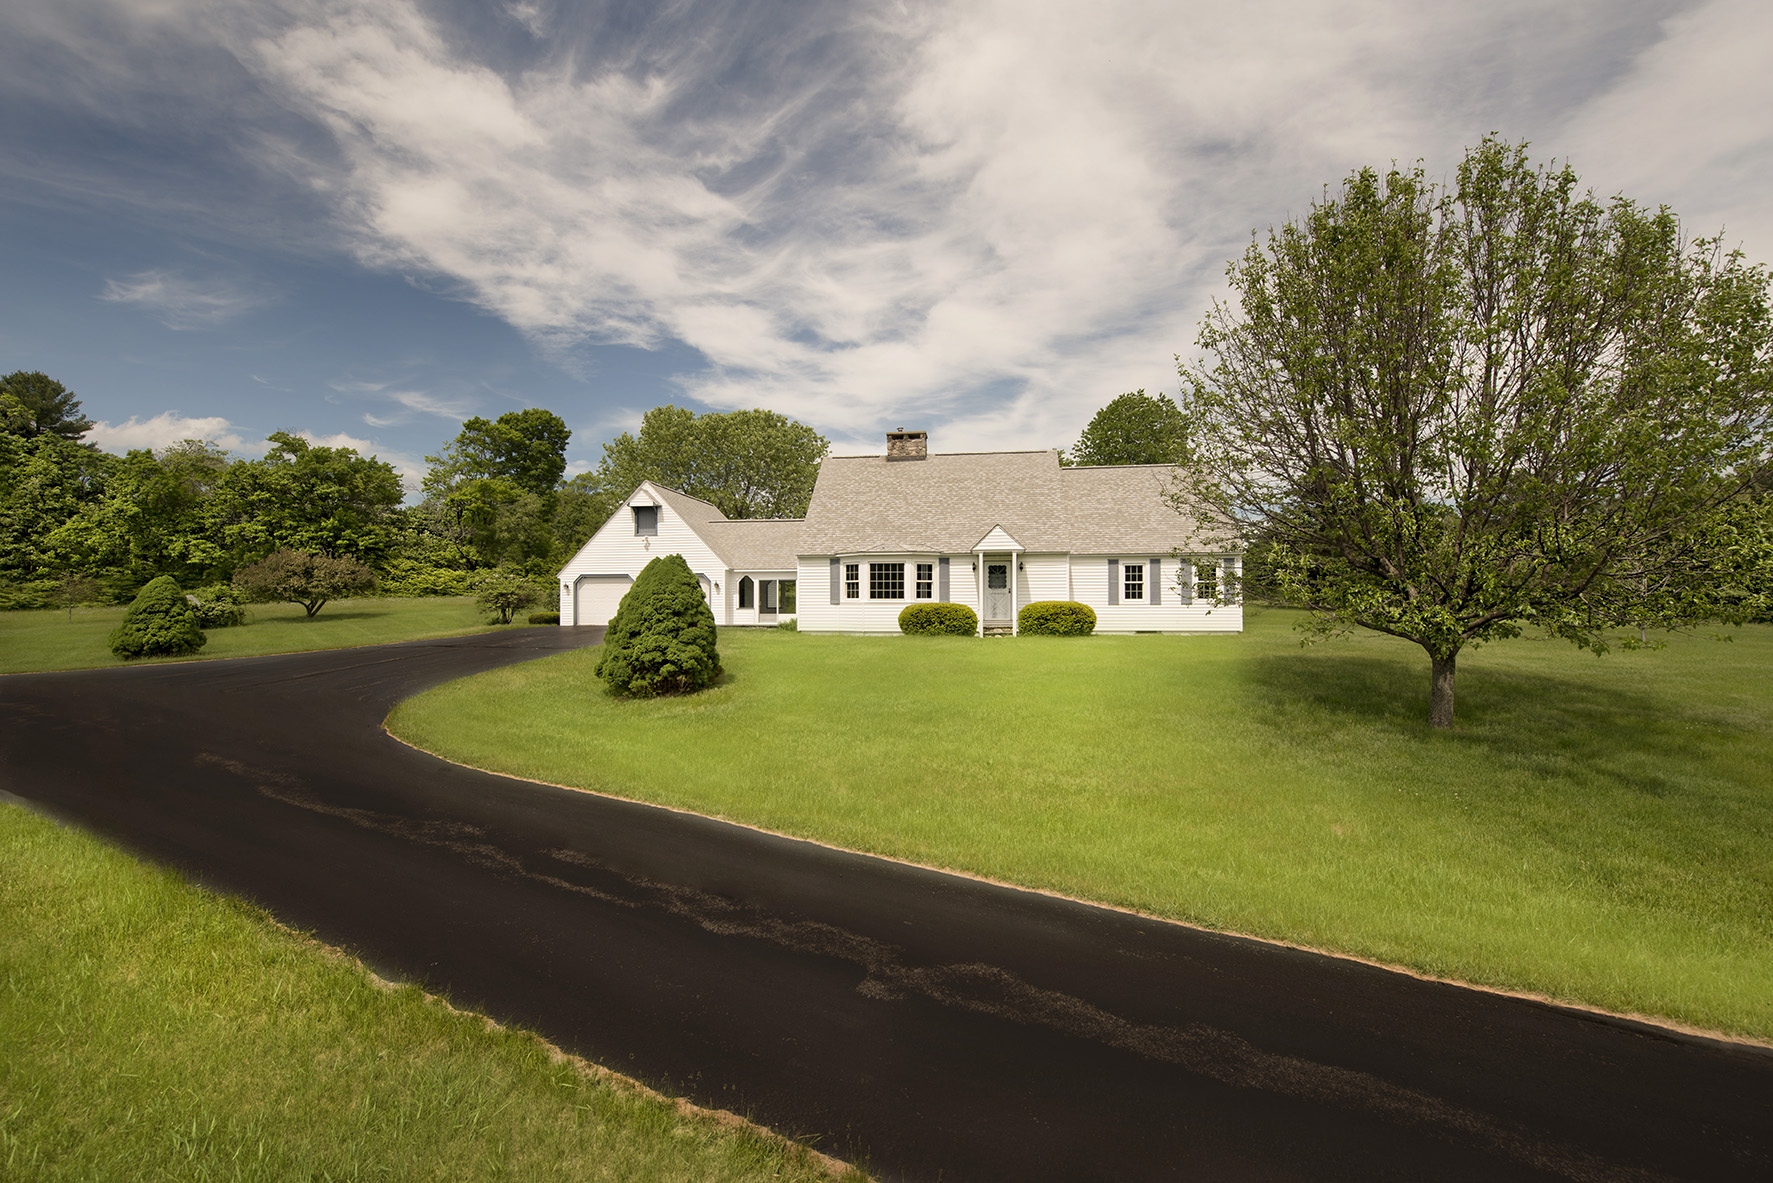 Single Family Home for Sale at Outstanding 140+ Acre Property, with picturesque 2,379 SF Cape. 540 Main Rd Monterey, Massachusetts, 01245 United States